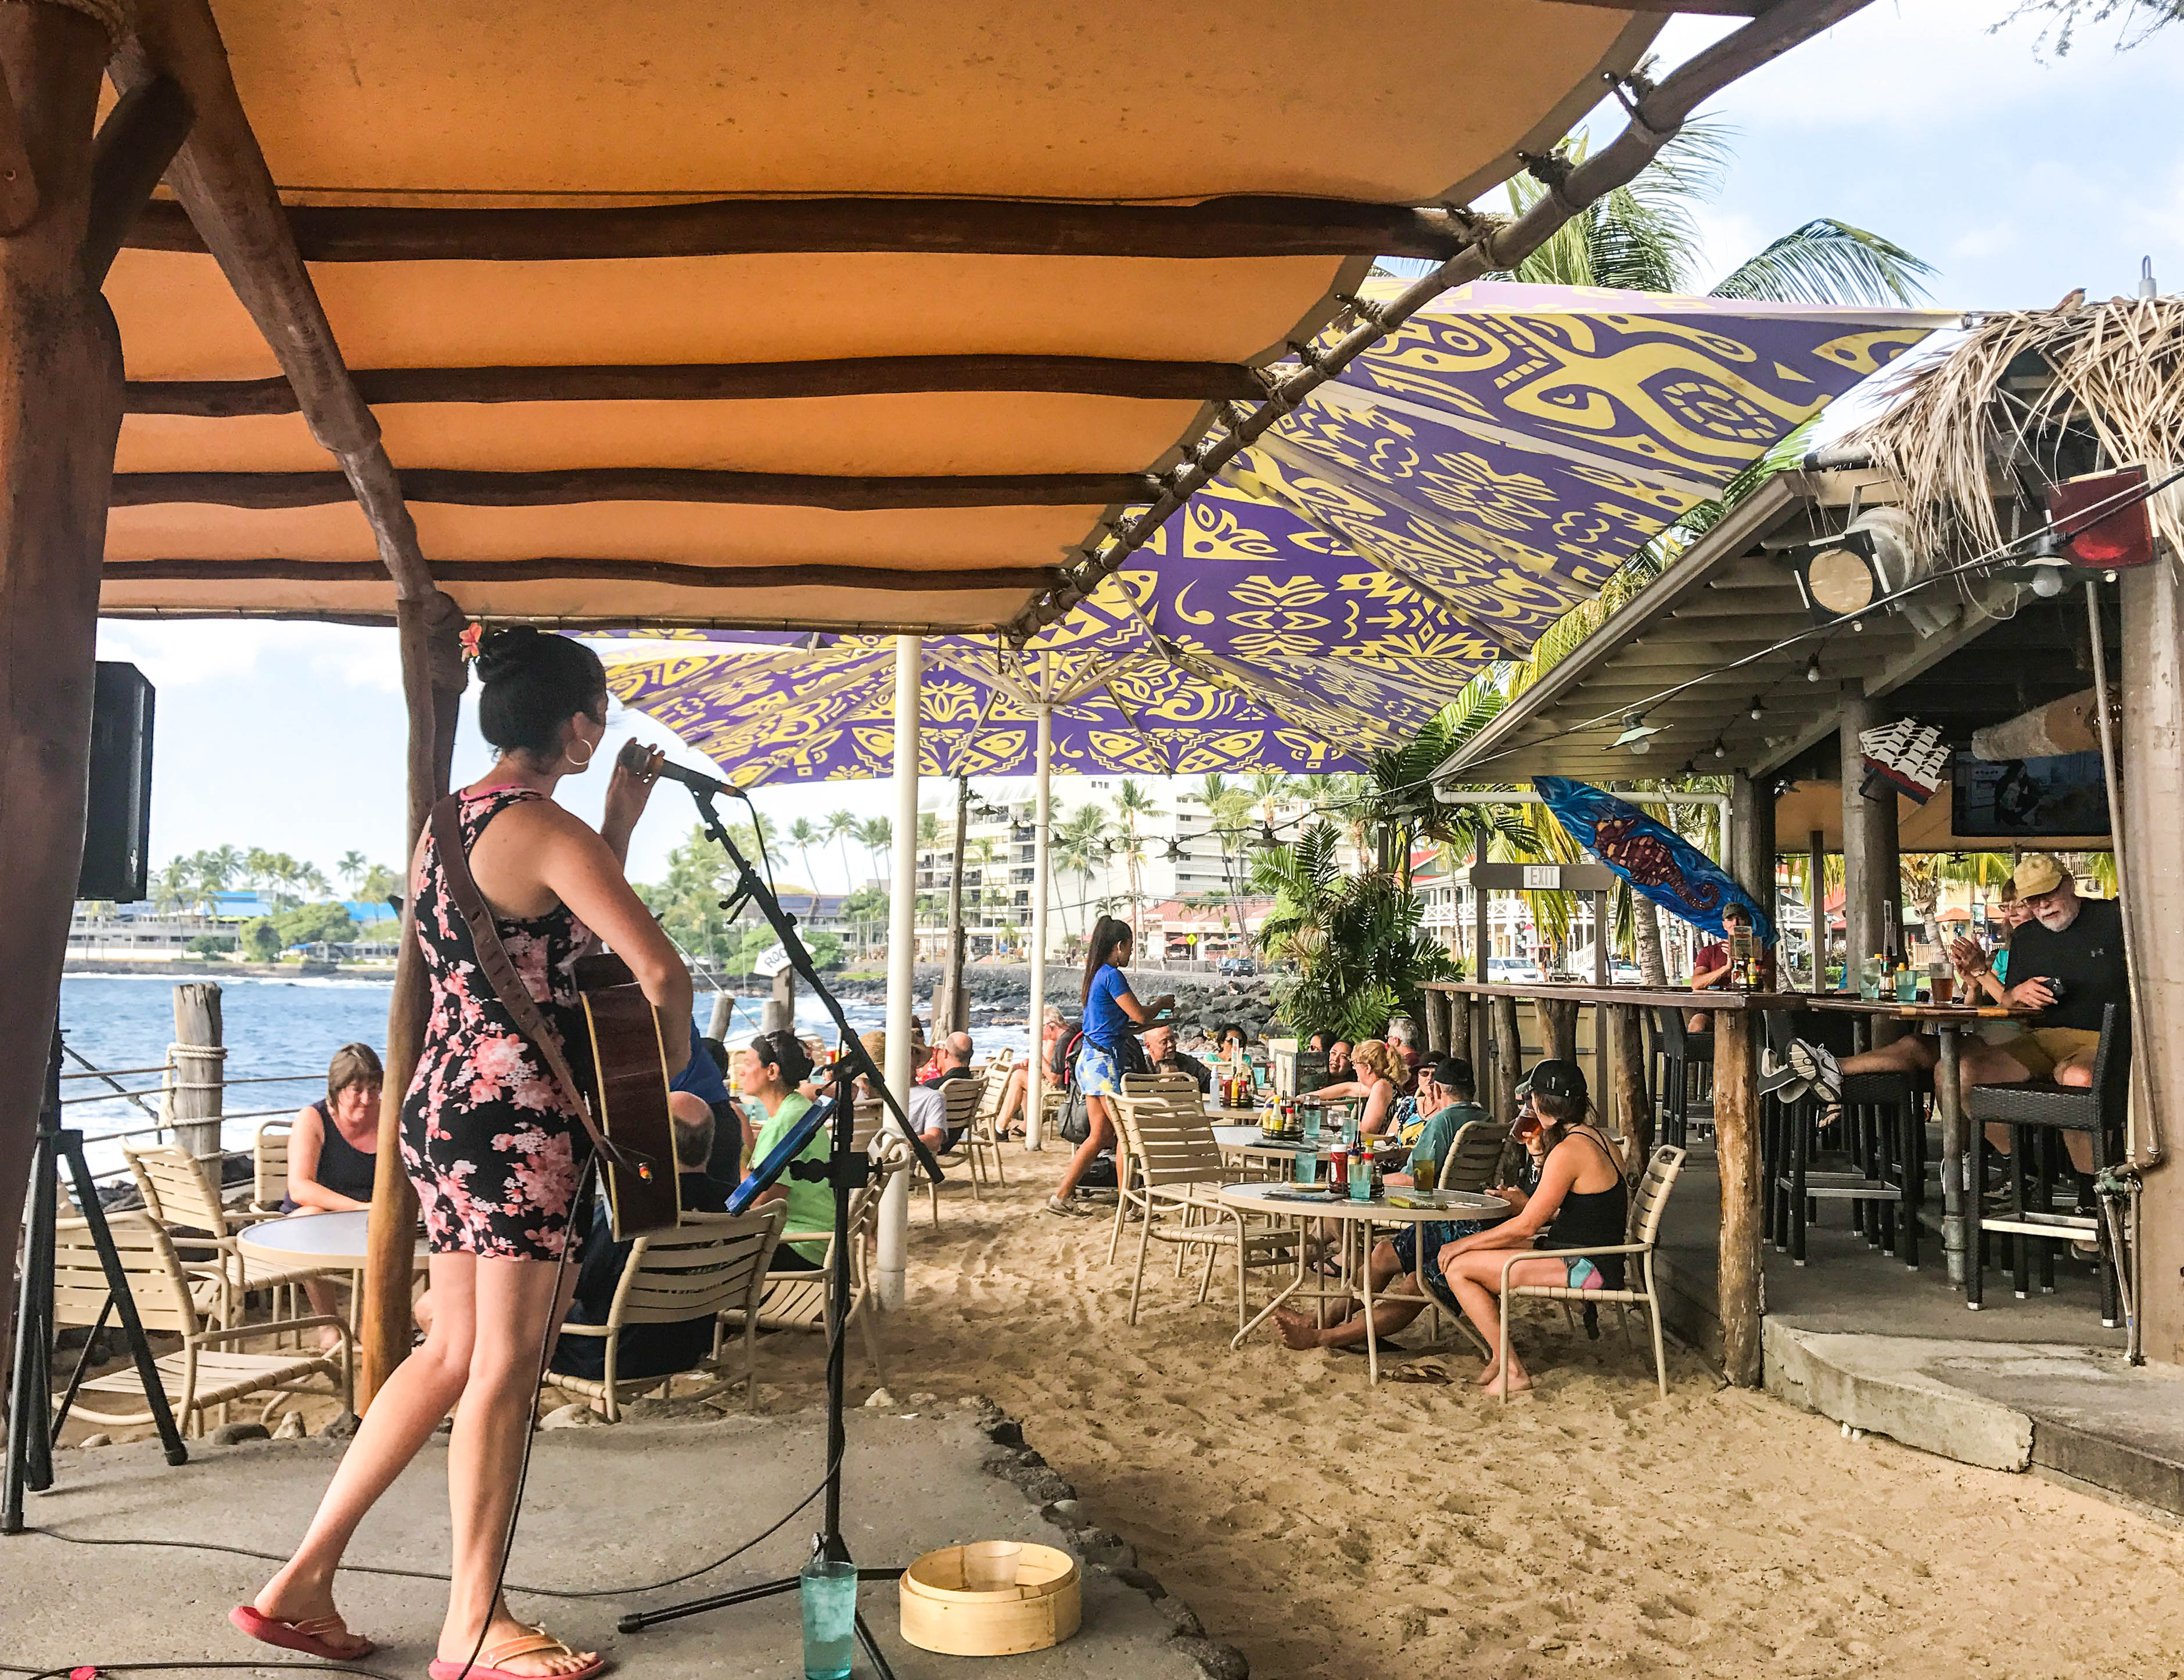 On The Rocks - The Best Bars in Kona, Hawaii